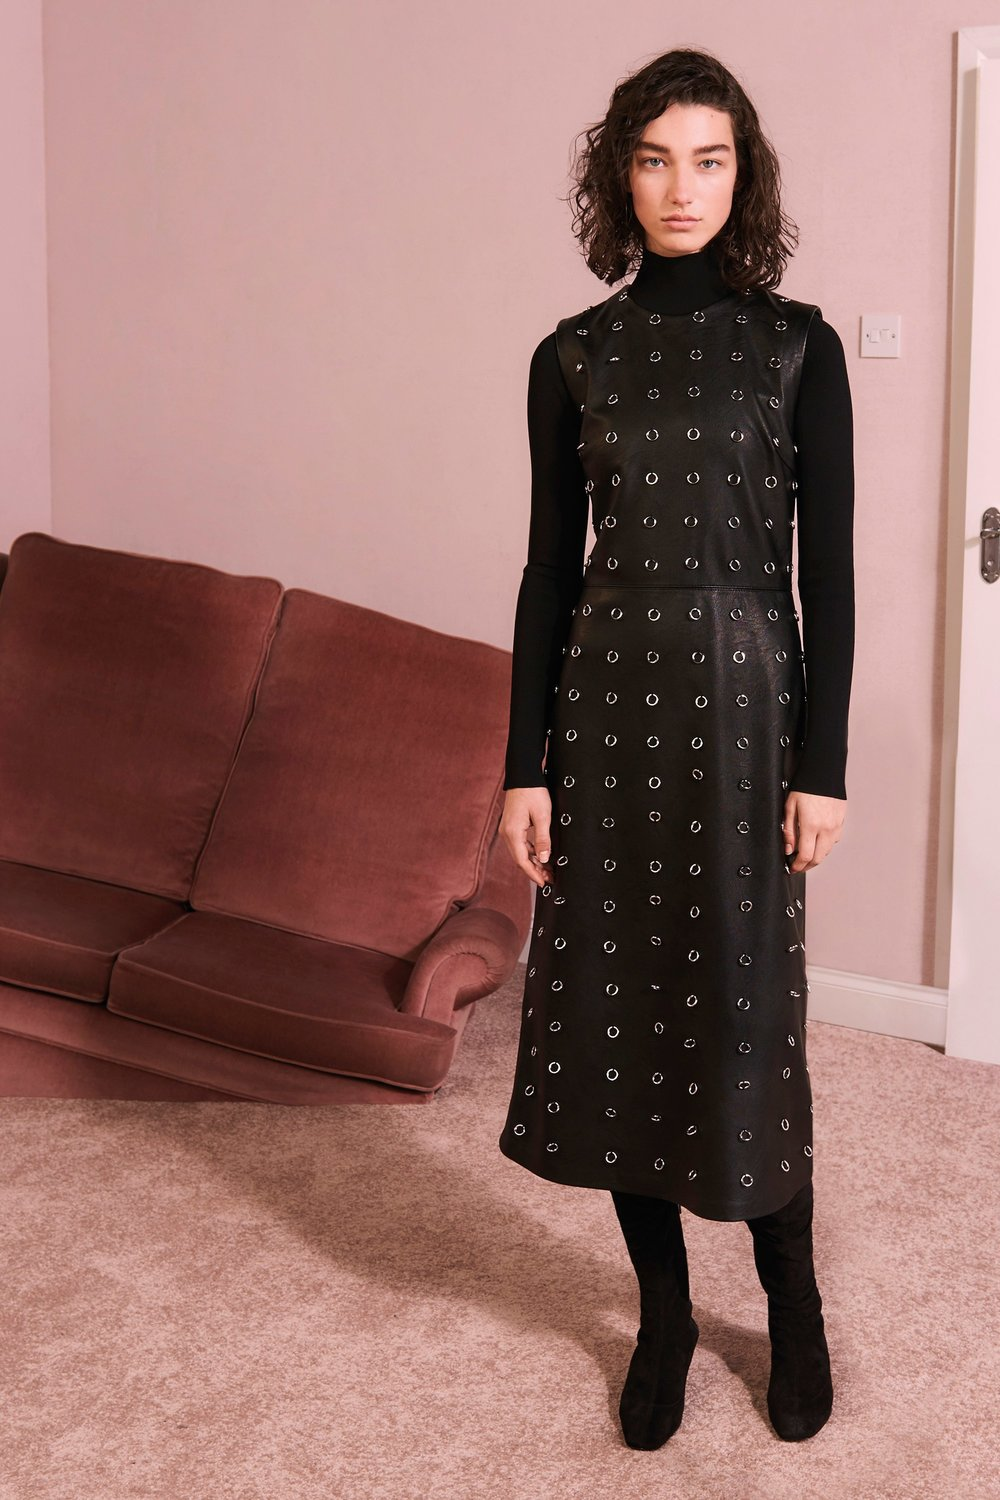 31-stella-mccartney-pre-fall-2017.jpg